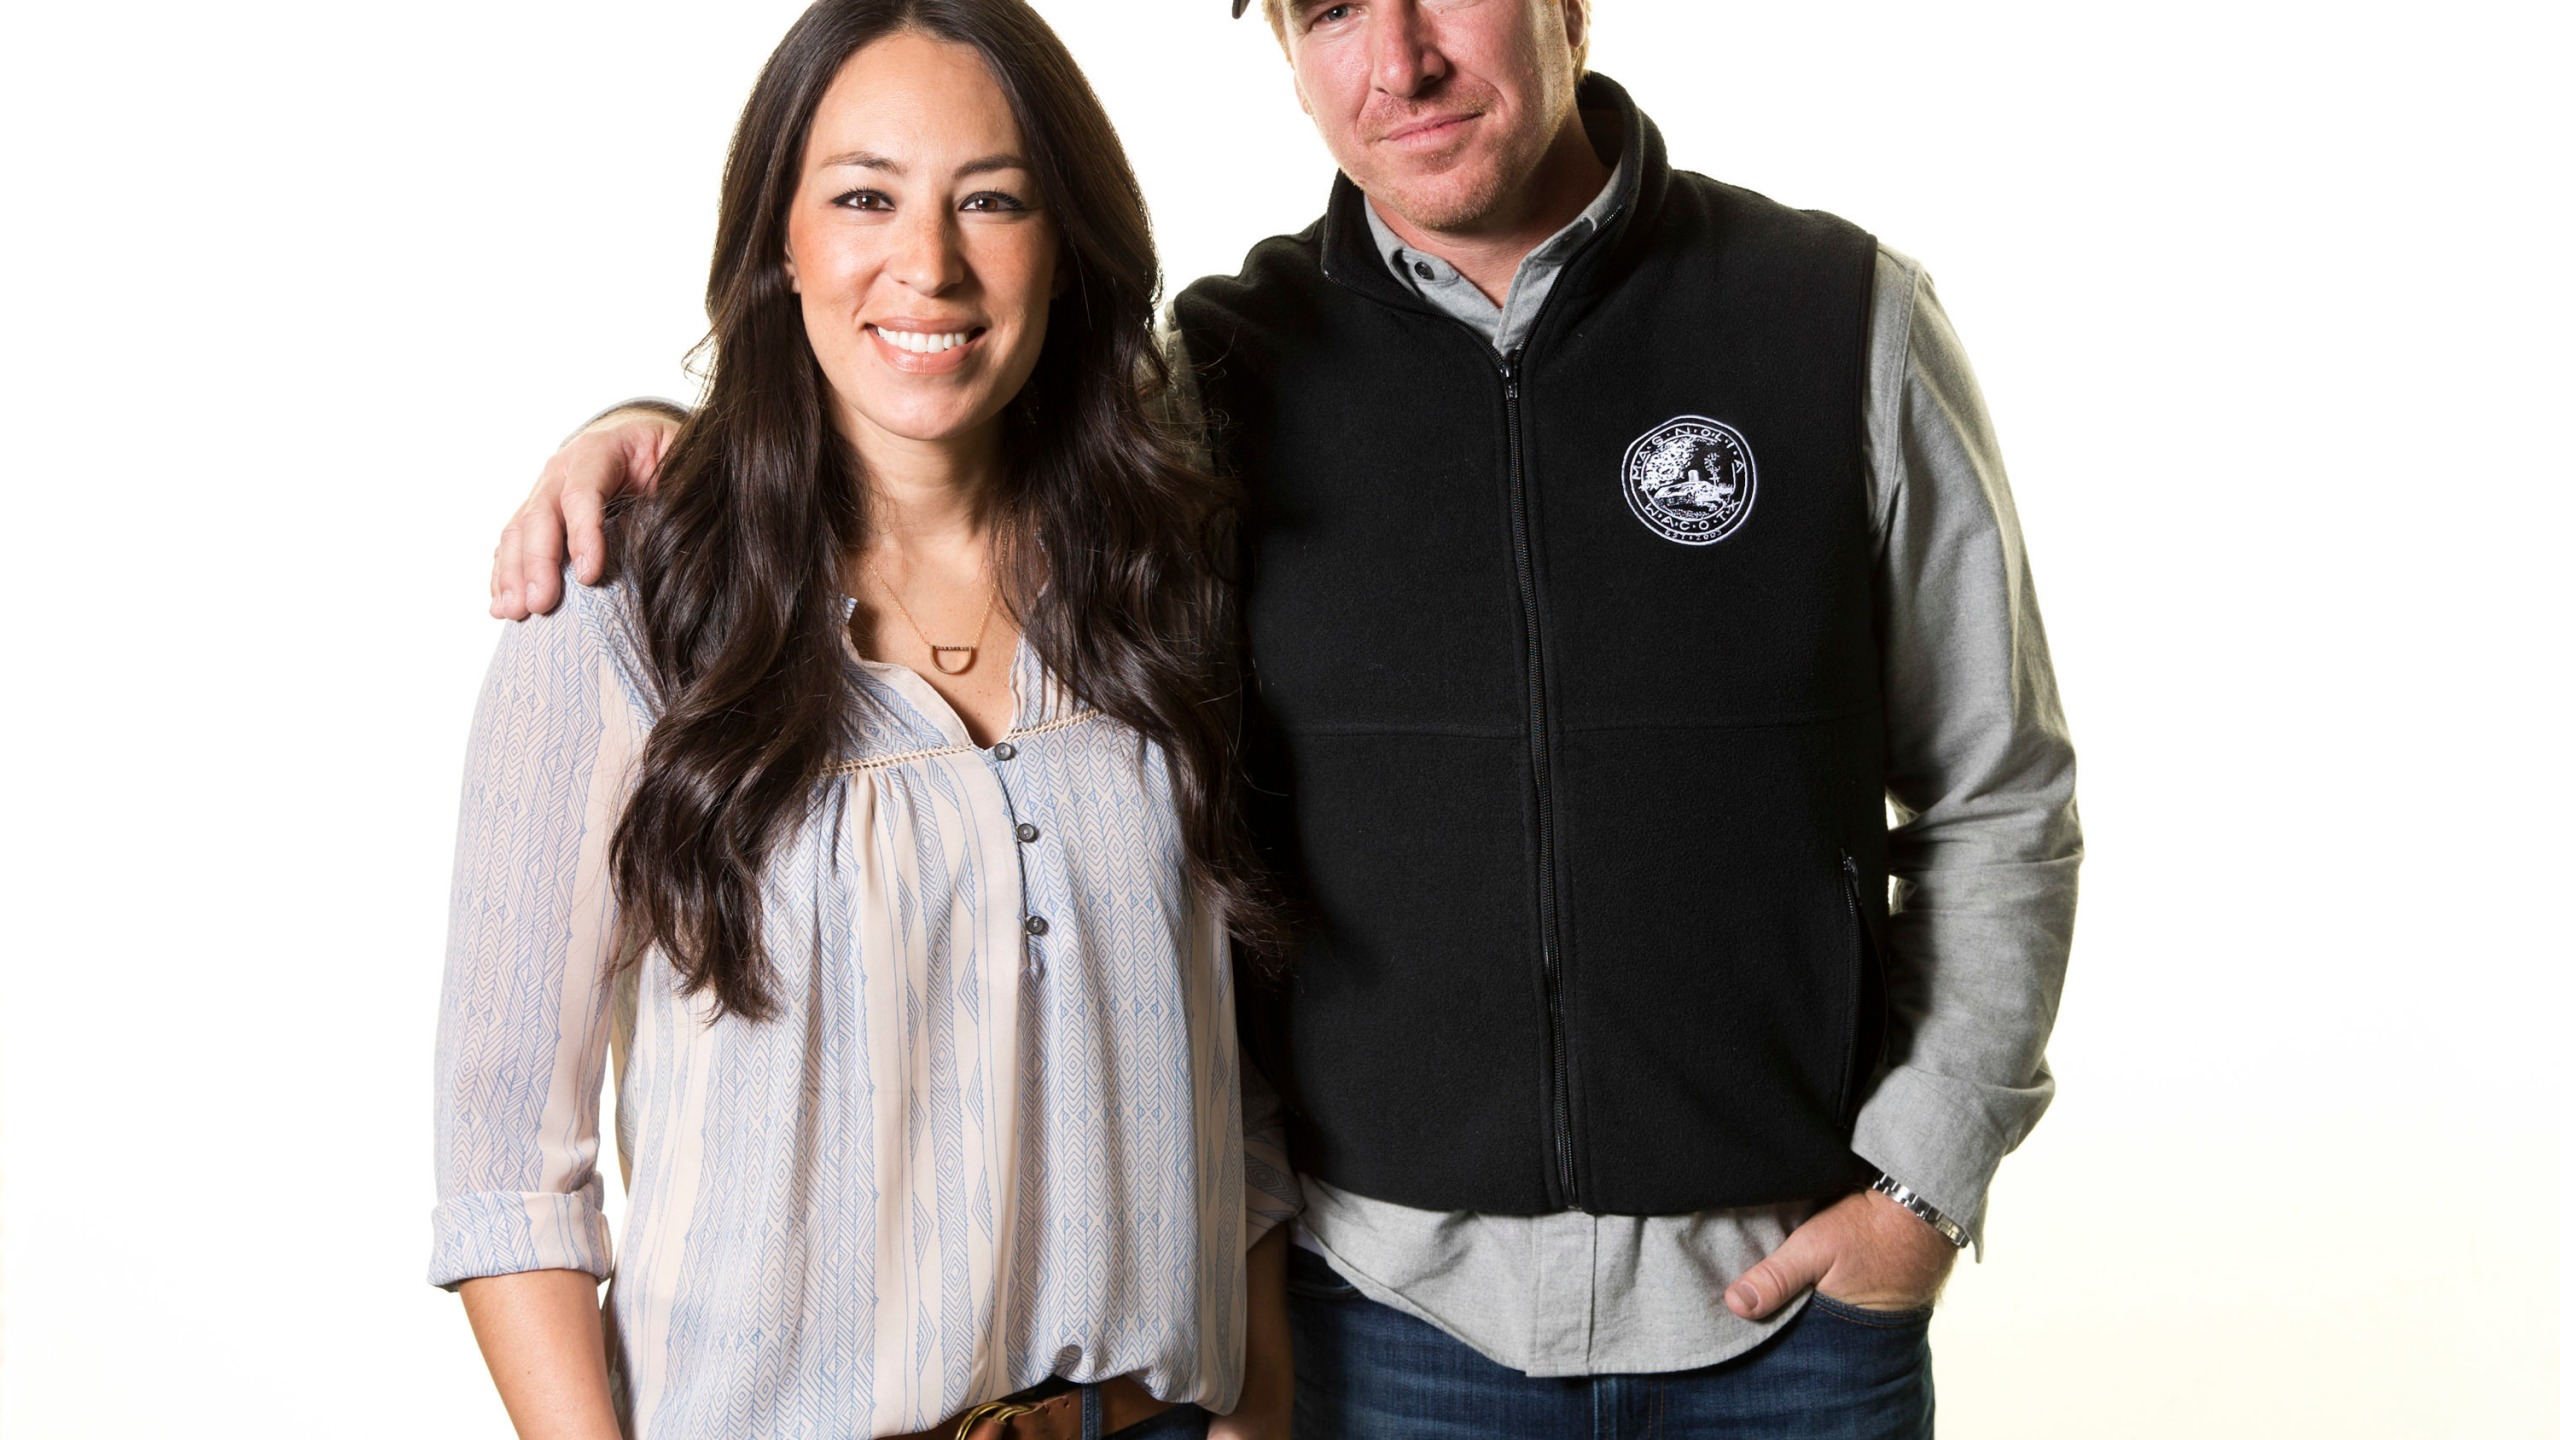 People_Chip_and_Joanna_Gaines_09752-159532.jpg95097508